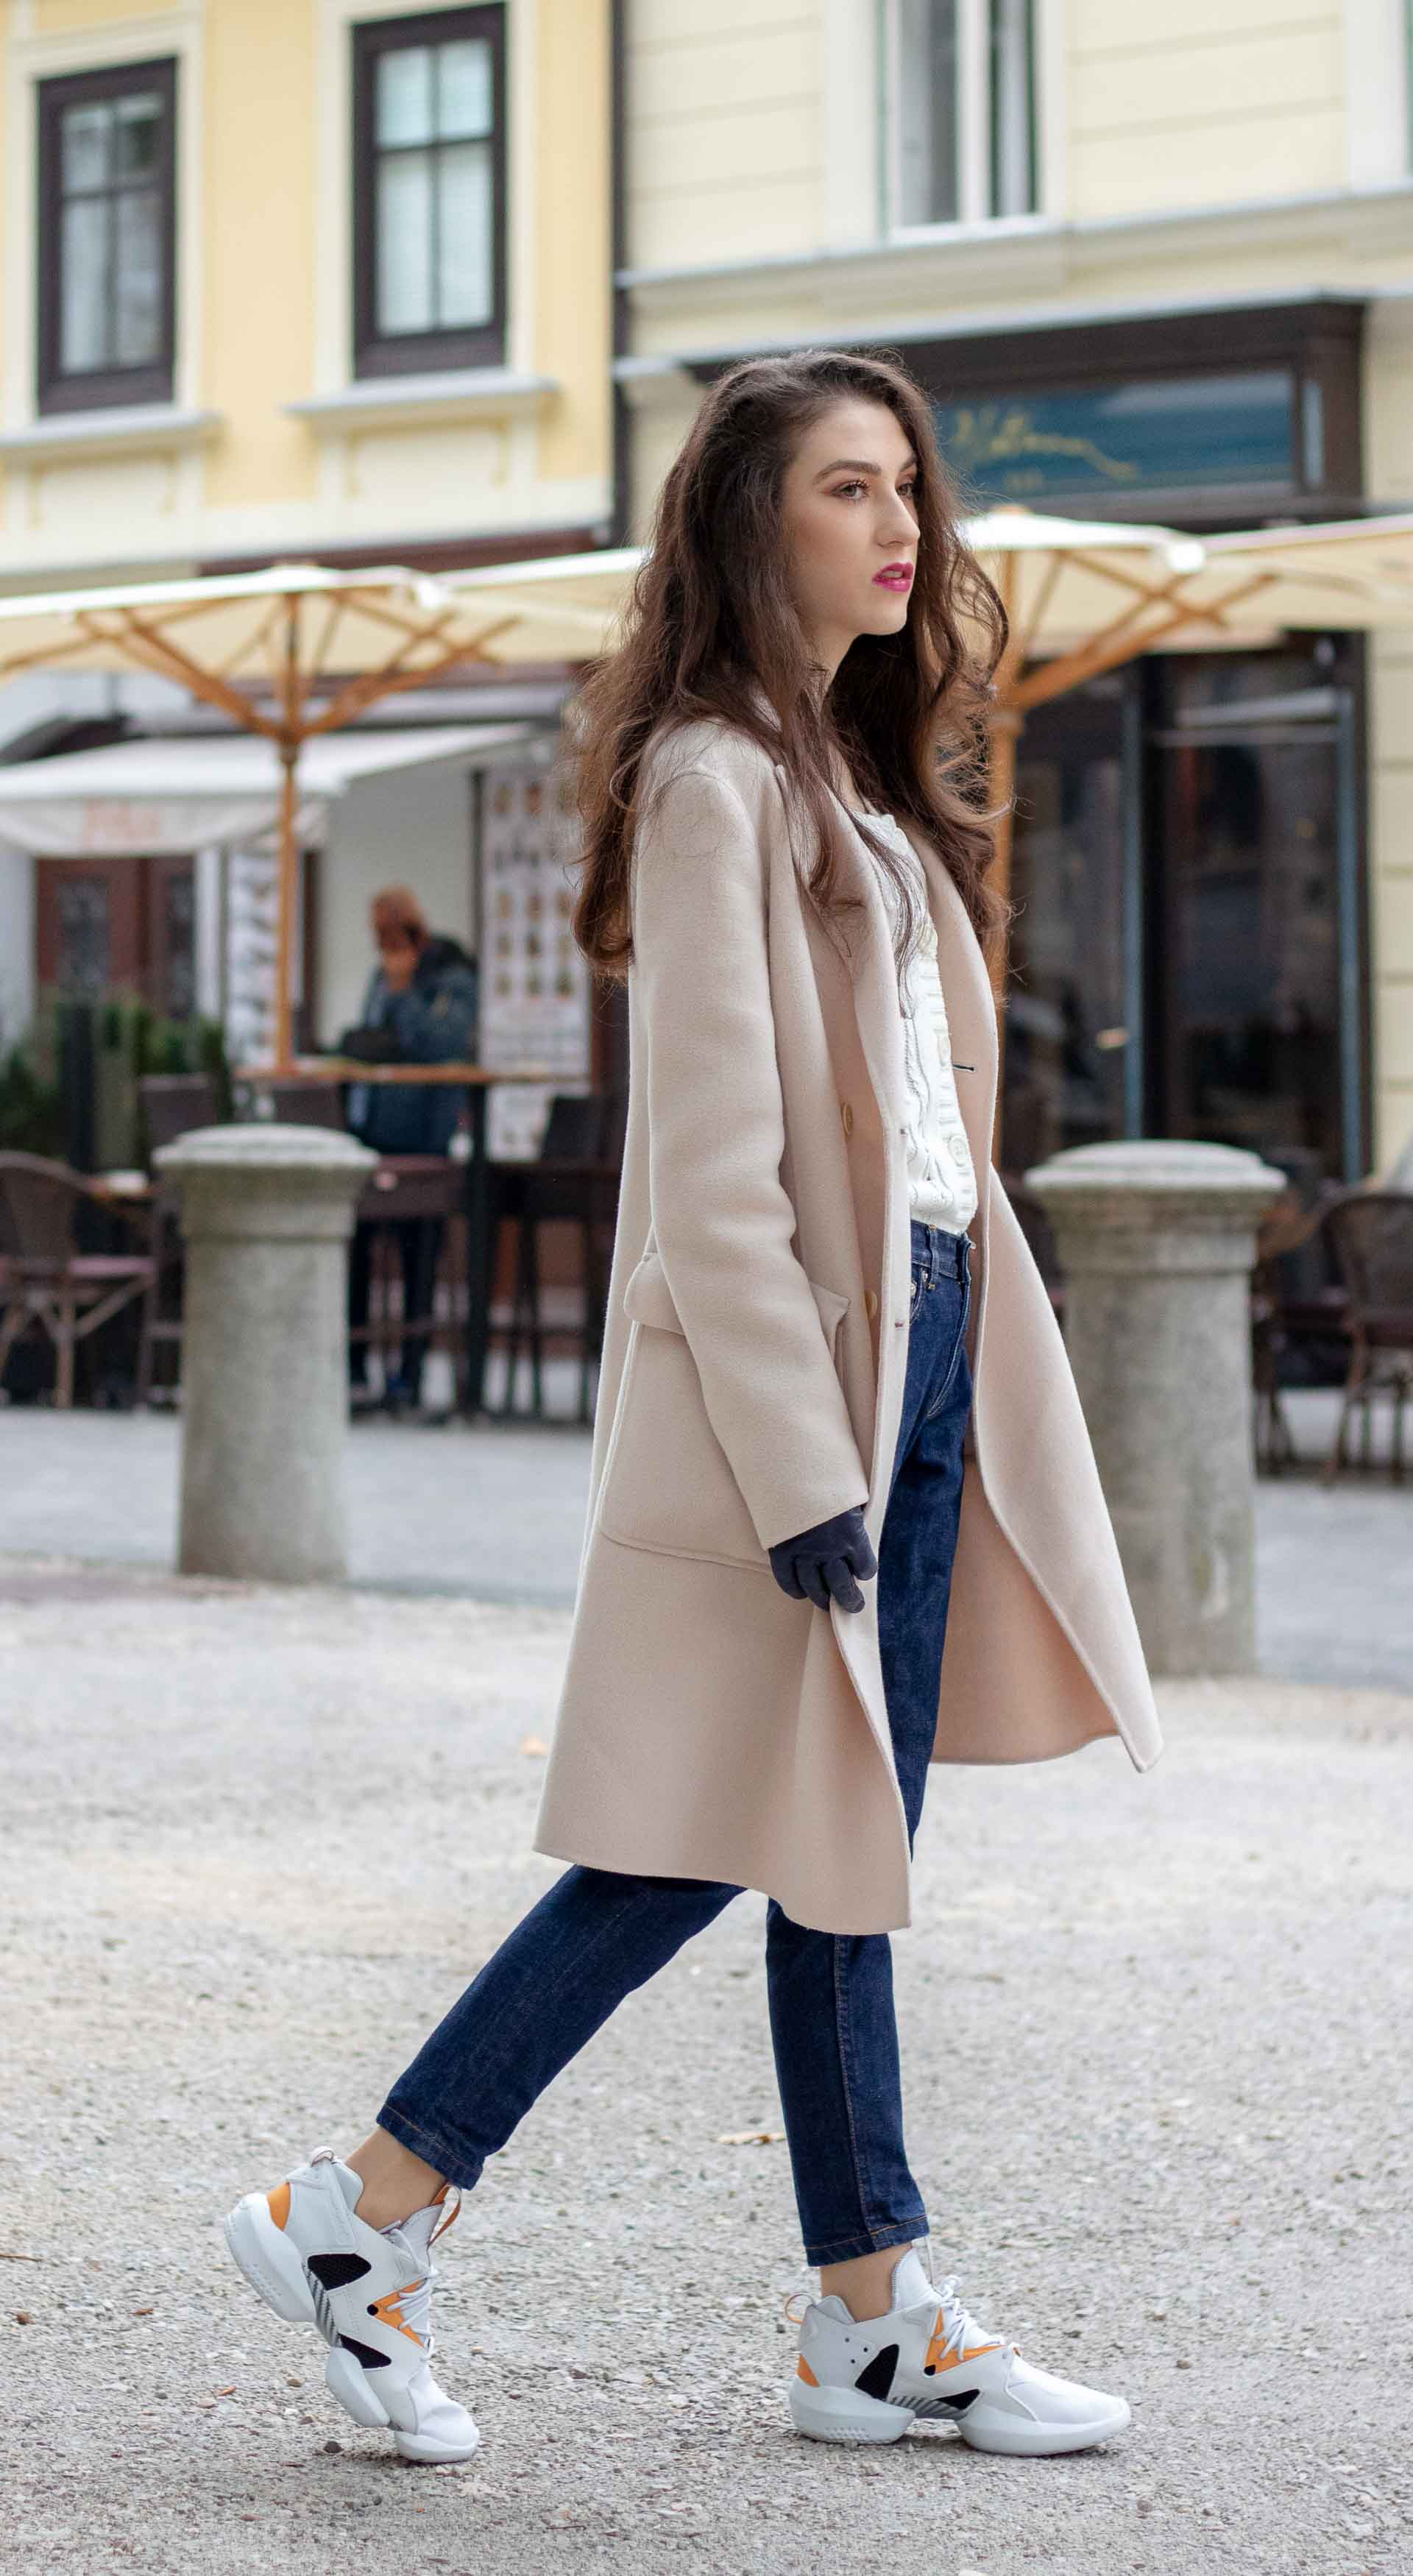 Beautiful Slovenian Fashion Blogger Veronika Lipar of Brunette from Wall wearing white Mango cardigan tucked into dark blue denim jeans from a.p.c., Weekend Max Mara coat, Reebok instapump sneakers in casually